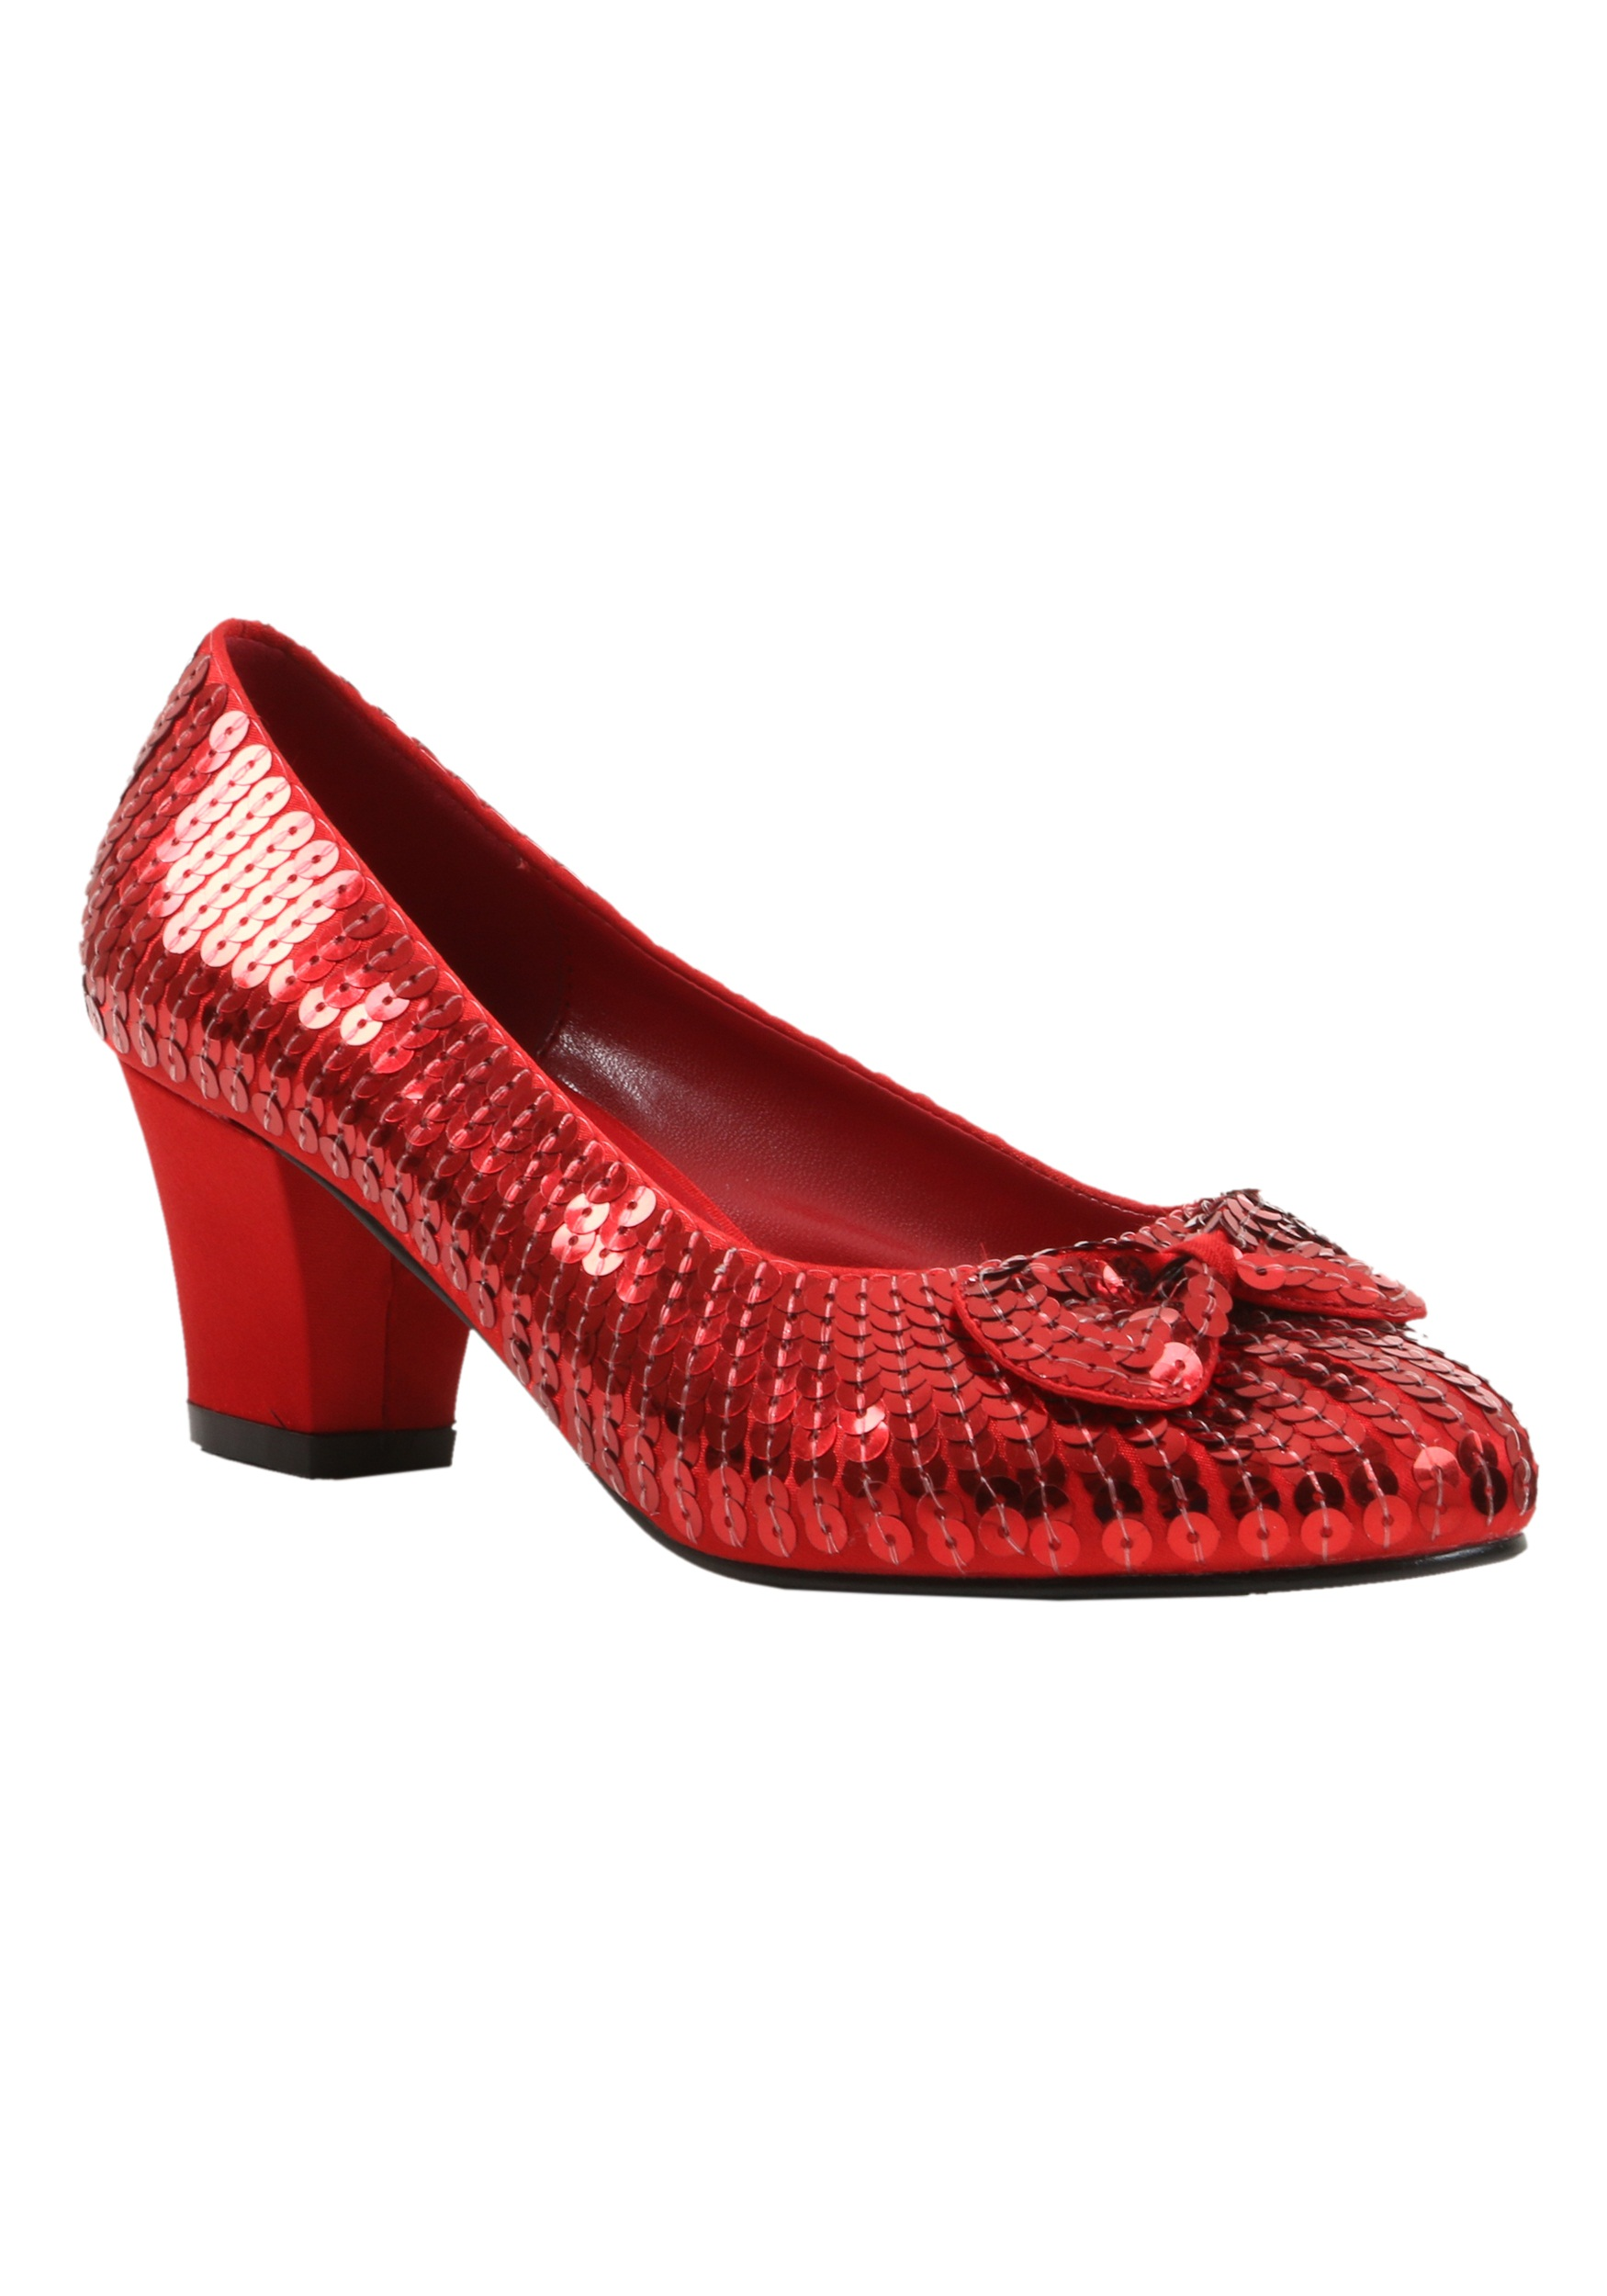 5009116a3f7 Child Red Sequin Shoes